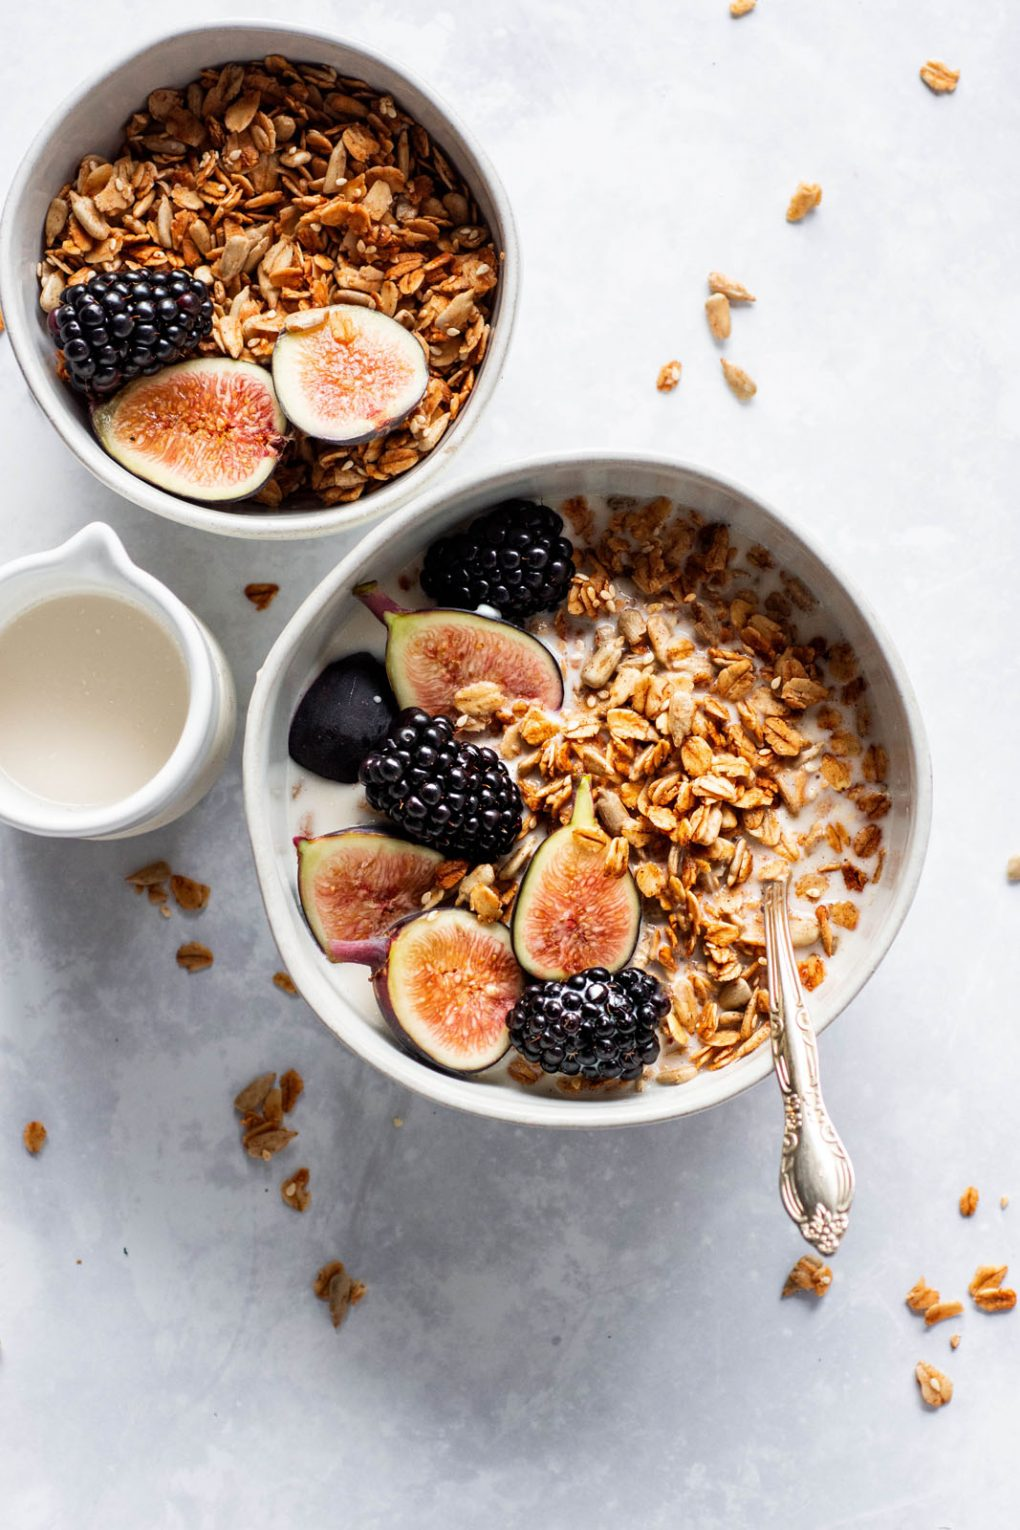 Overhead shot of two small white bowls filled with maple sesame granola, cut figs, and blackberries. Next to a small white pitcher of milk on a white background with scattered granola around the bowl.